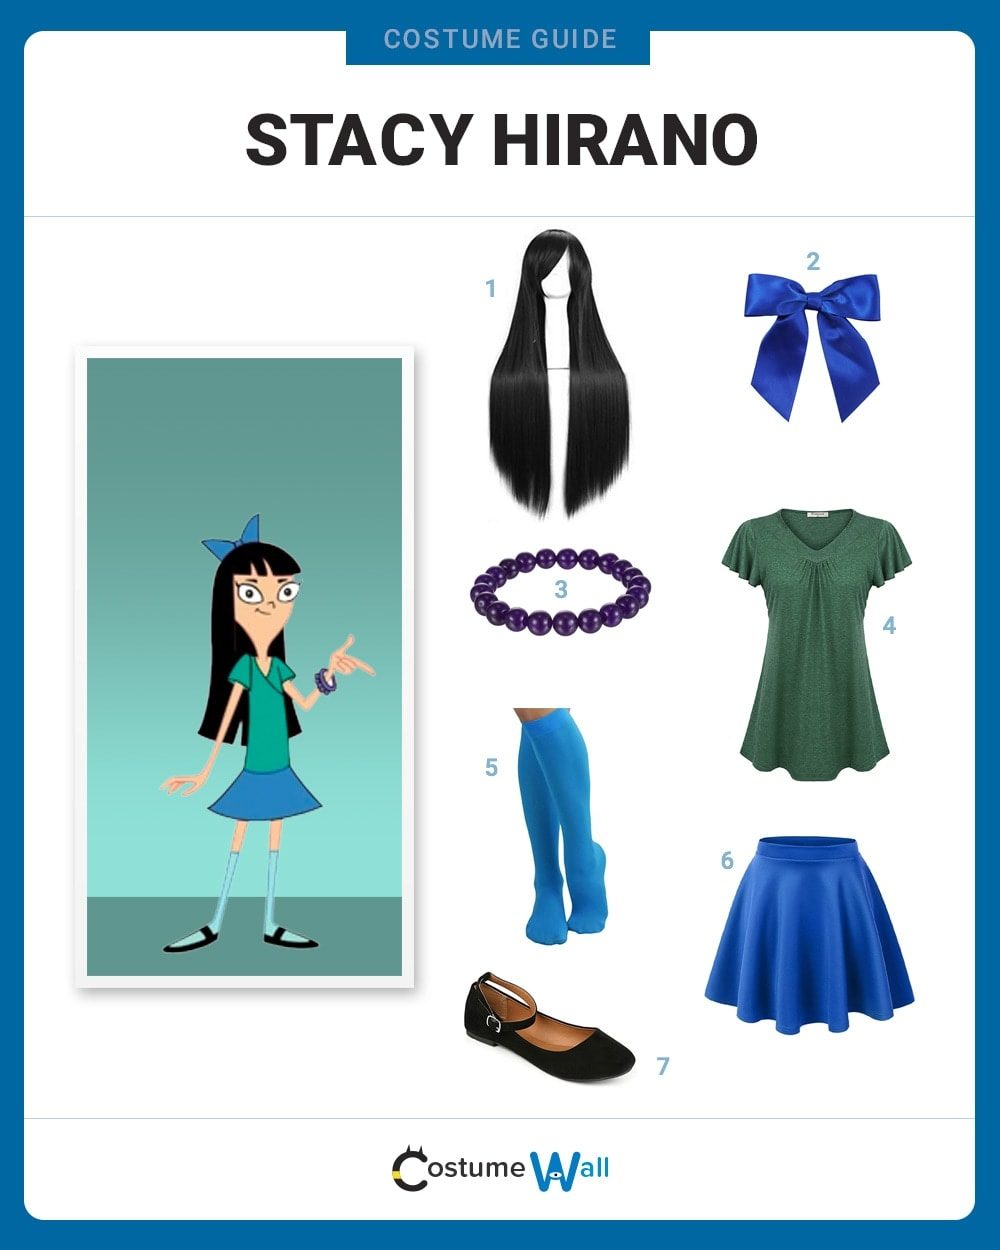 Stacy Hirano Costume Guide